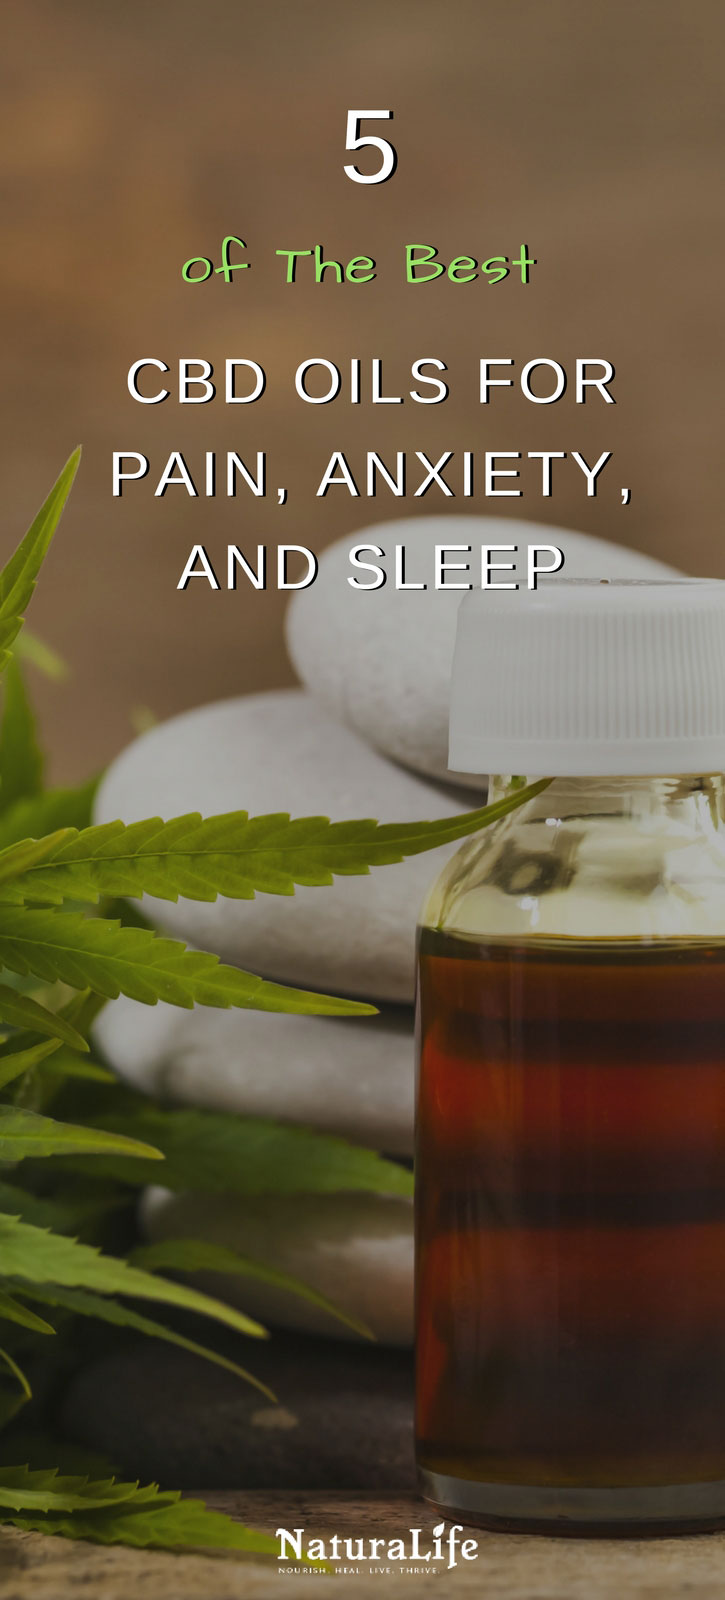 5 of the absolute best CBD oils for pain, anxiety, and insomnia